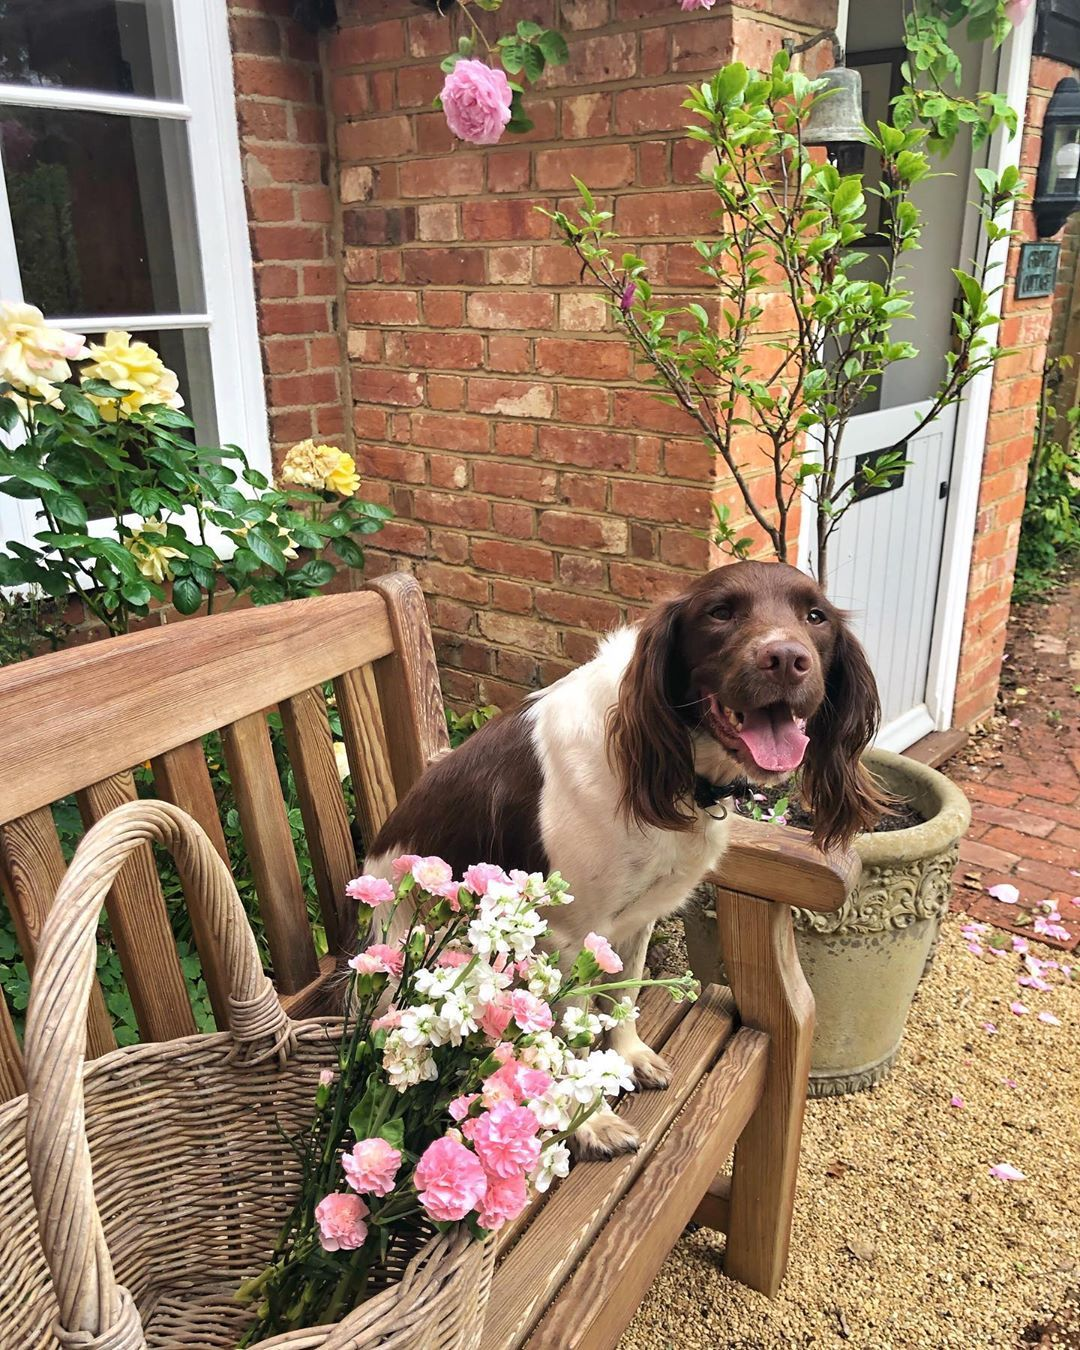 Naomi Grove Cottage On Instagram Happy Monday Did You All Have A Lovely Weekend As You Can See Radiey Enjoyed Have A Lovely Weekend Lovely Instagram